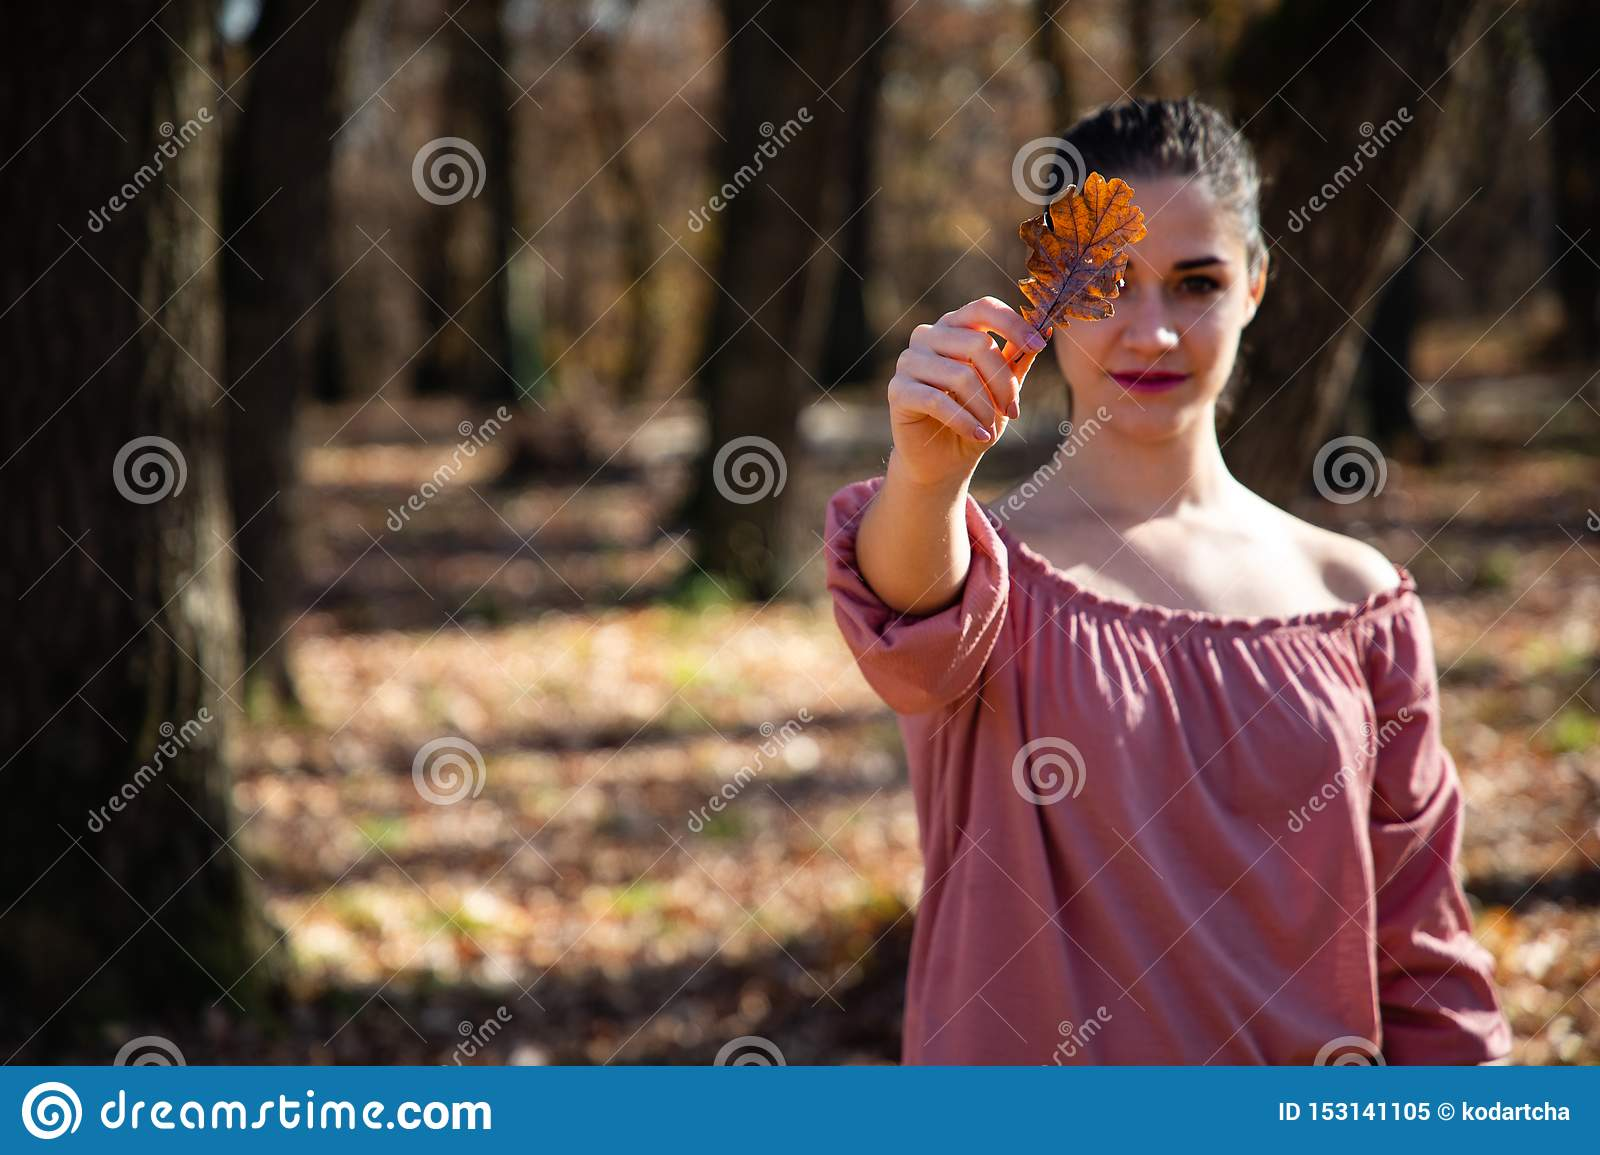 Beautiful girl holding a brown leaf covering her eye